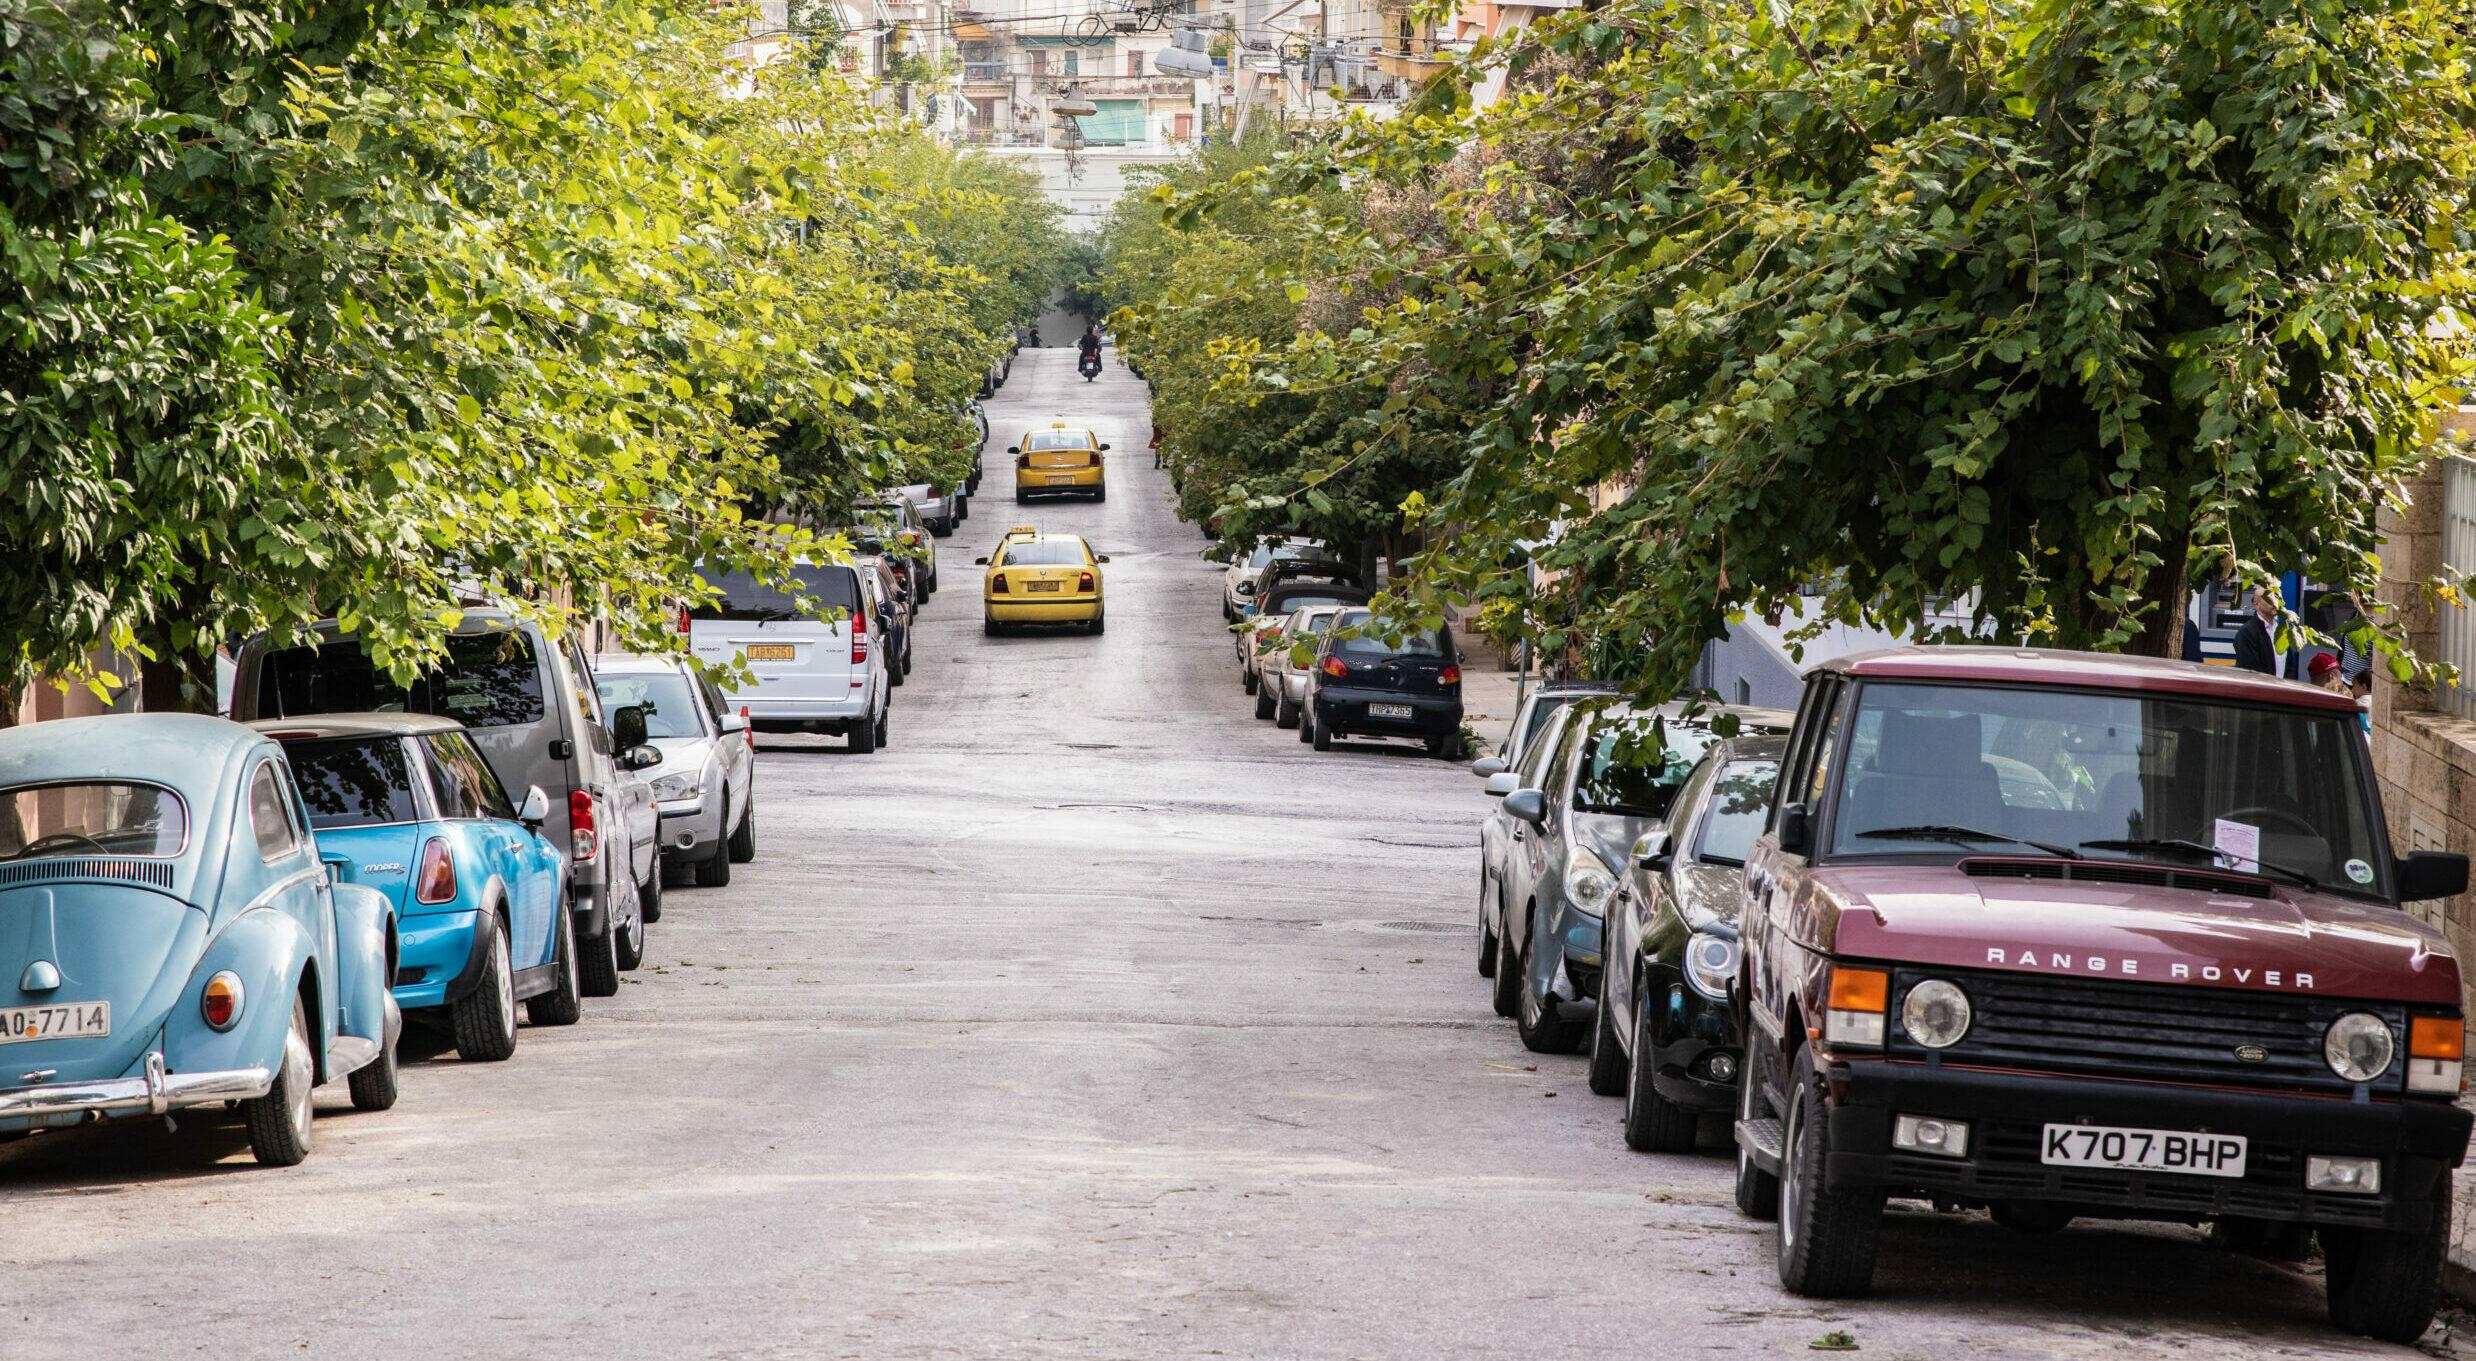 Athens: The neighborhood named after a bed factory